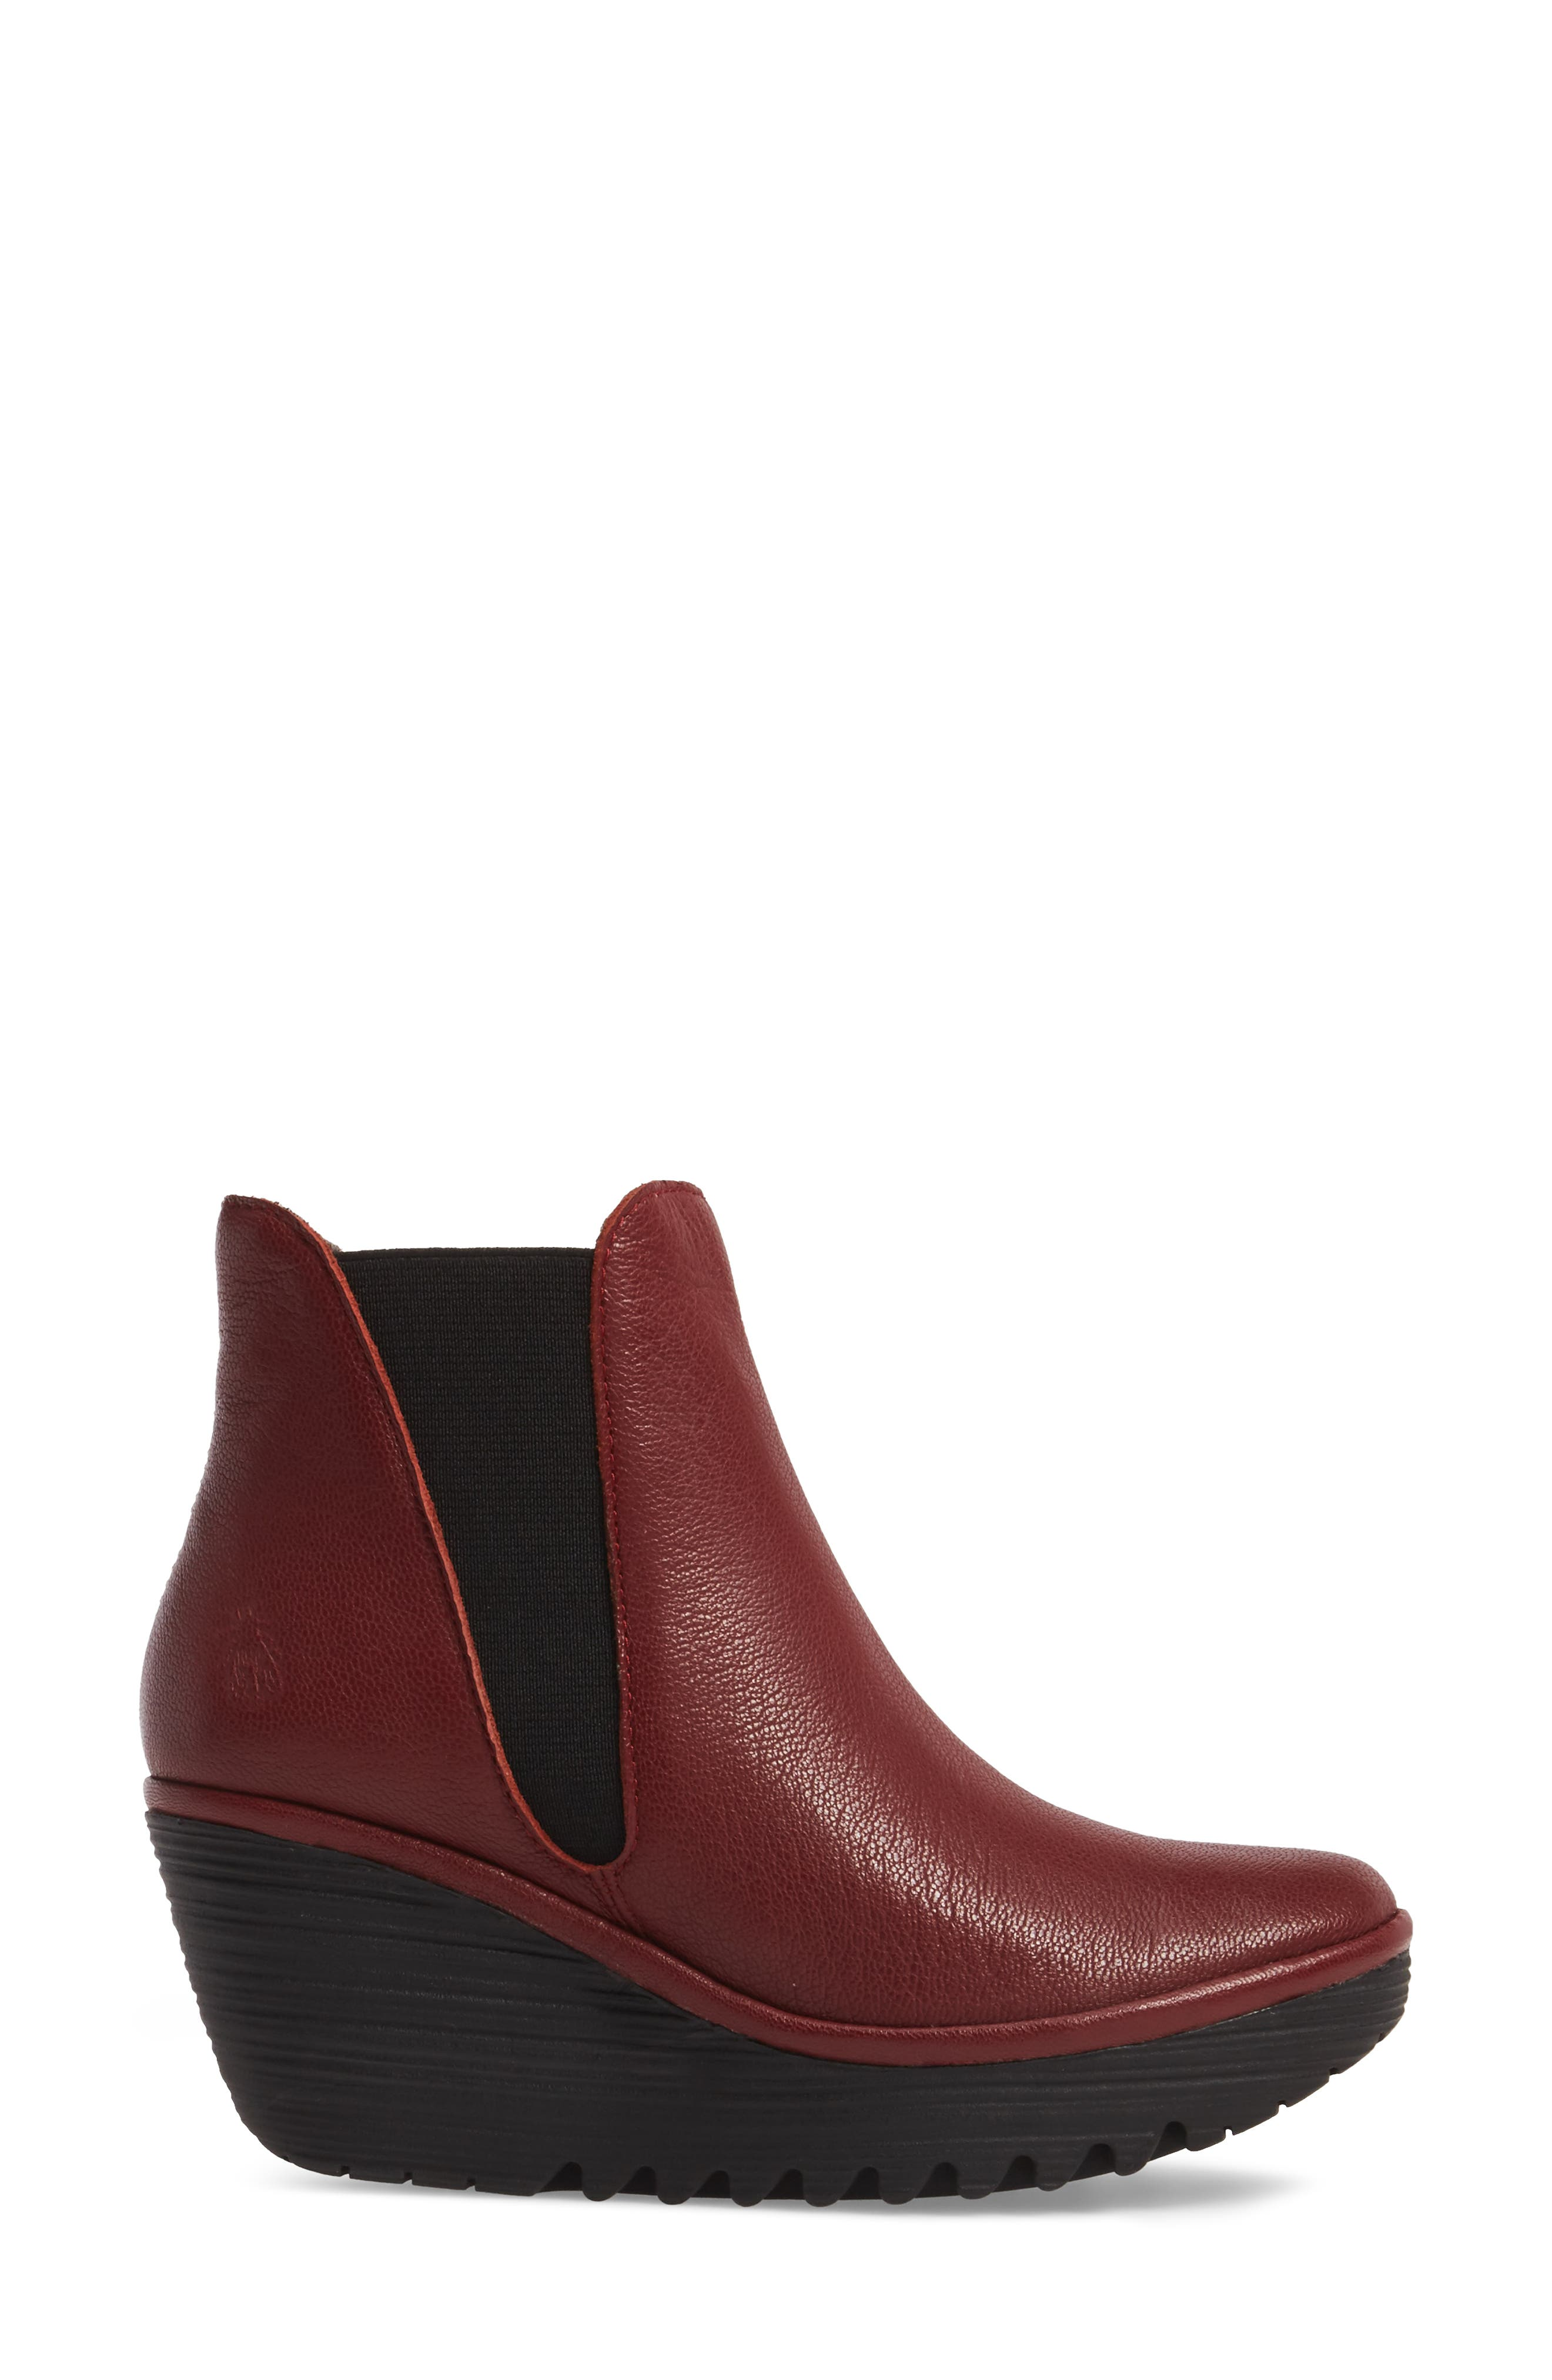 Yoss Wedge Bootie,                             Alternate thumbnail 3, color,                             Cordoba Red Leather